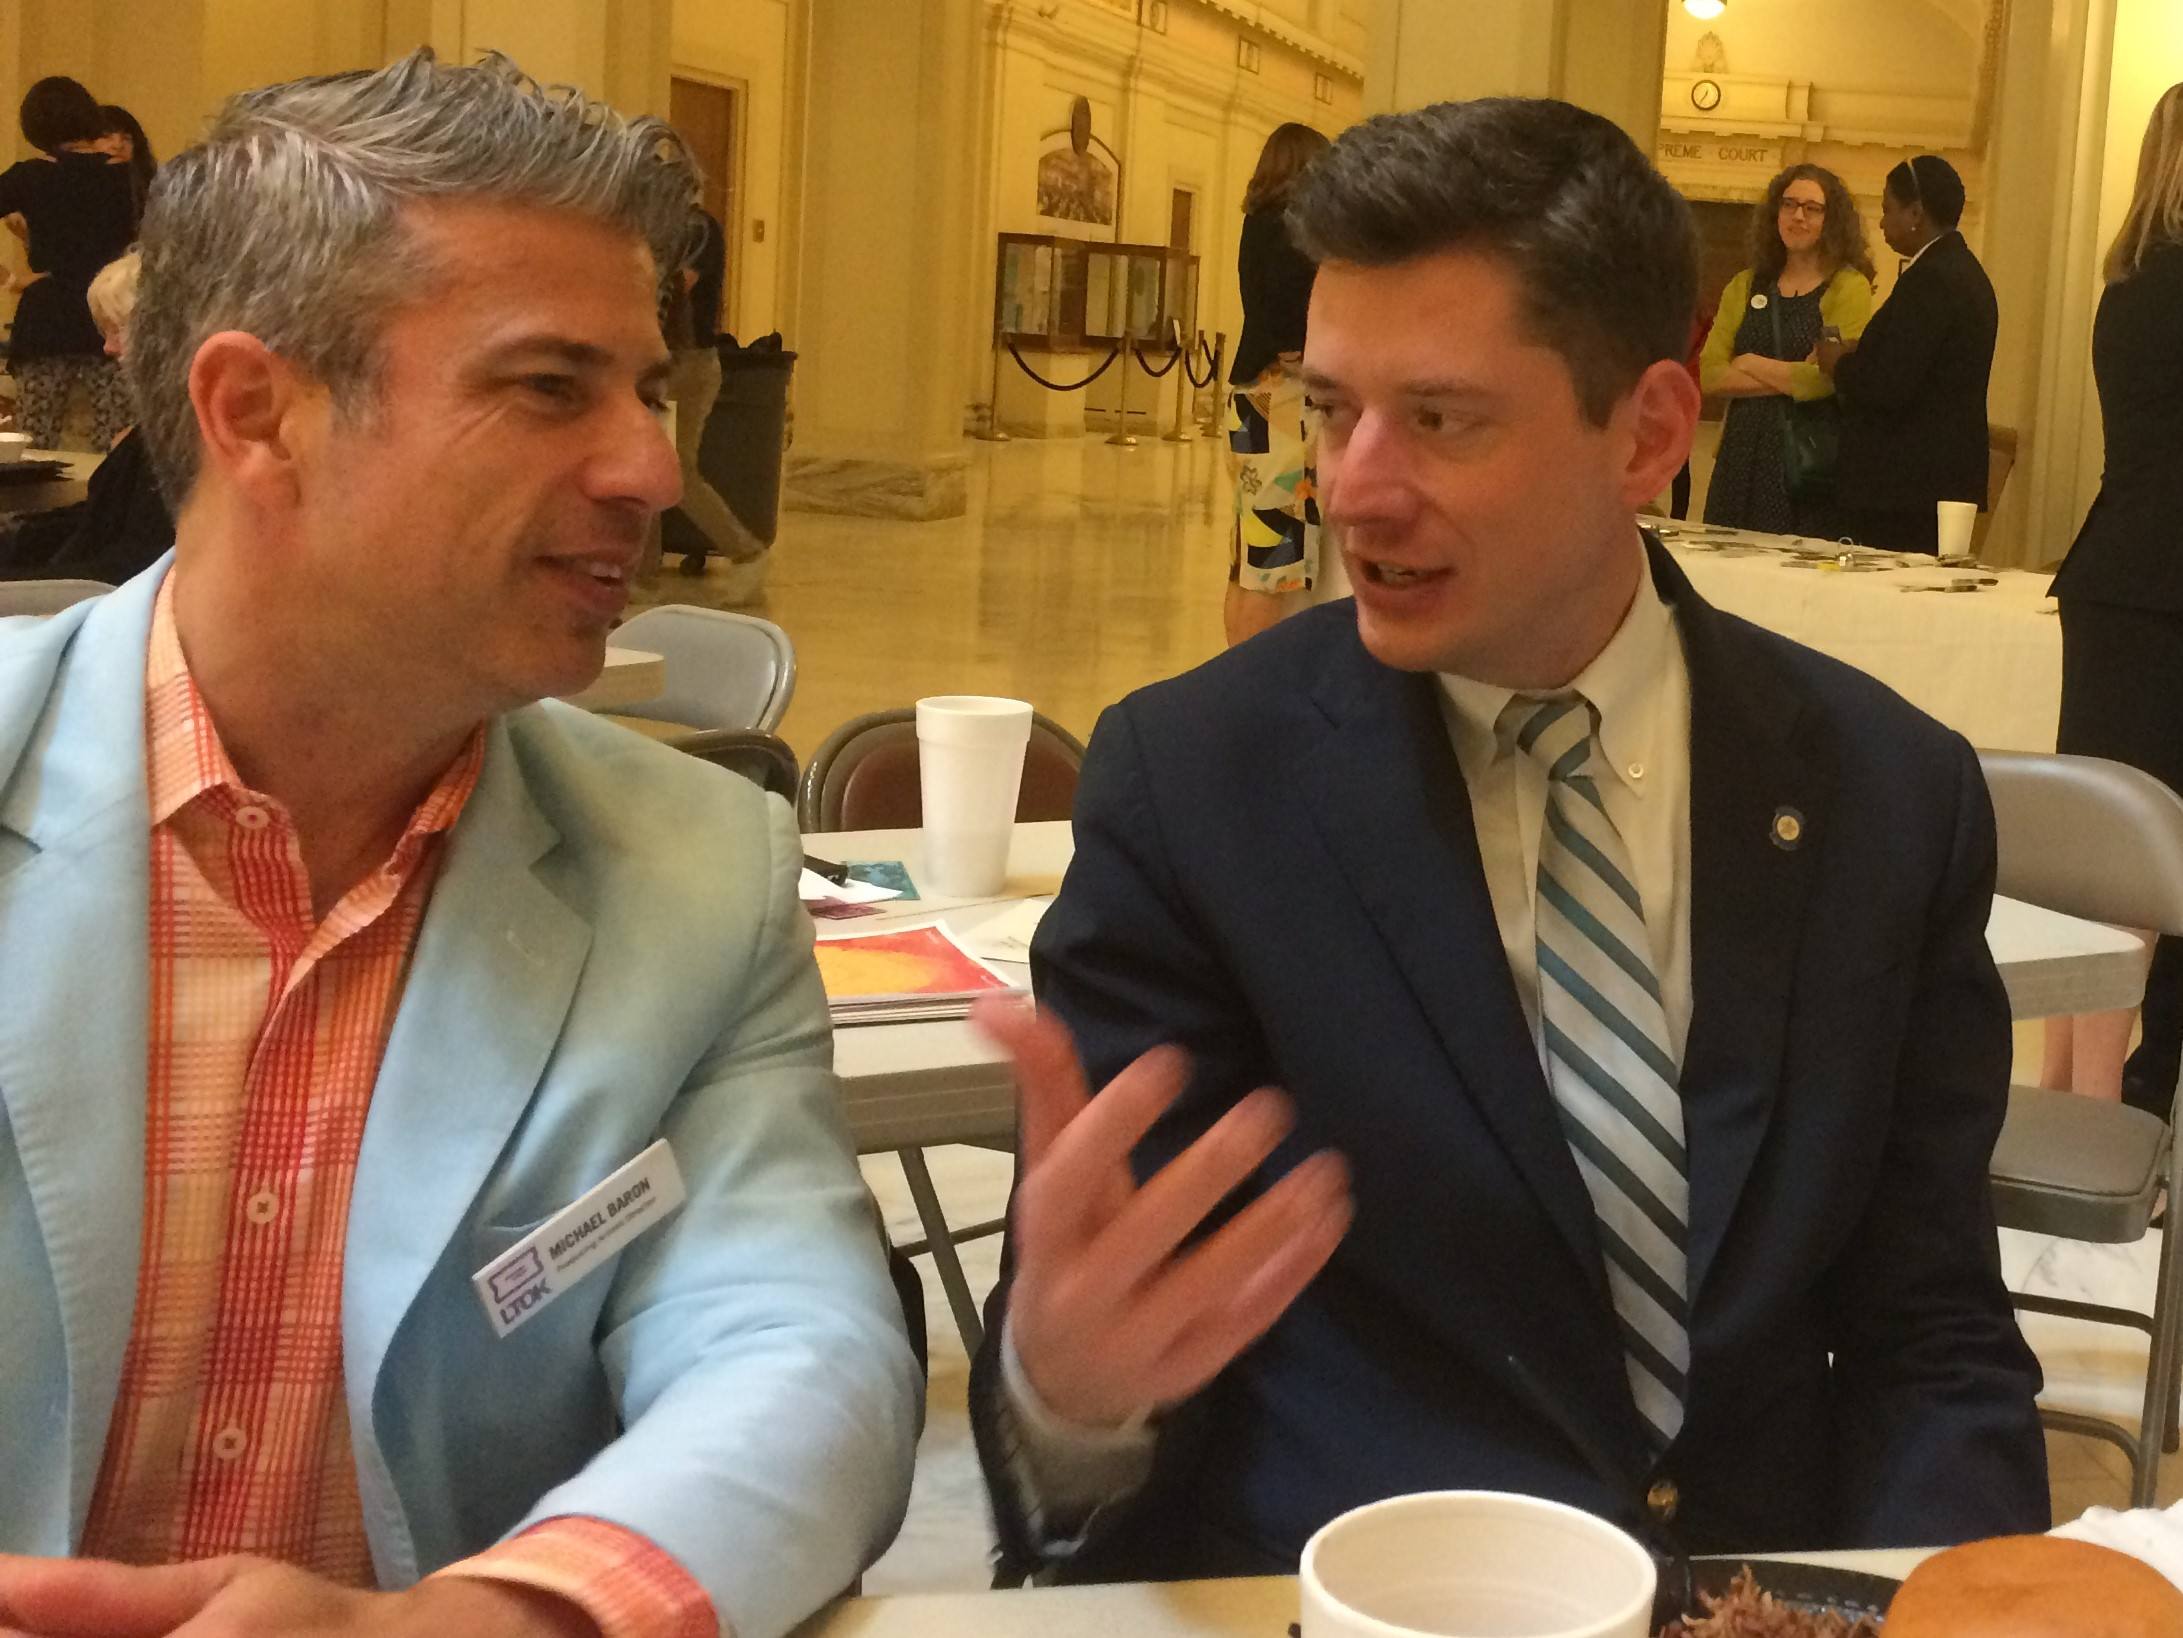 Michael Baron, Artistic Director of Lyric Theatre, talks with Senator David Holt (now Mayor Holt) at Arts Day in 2017.